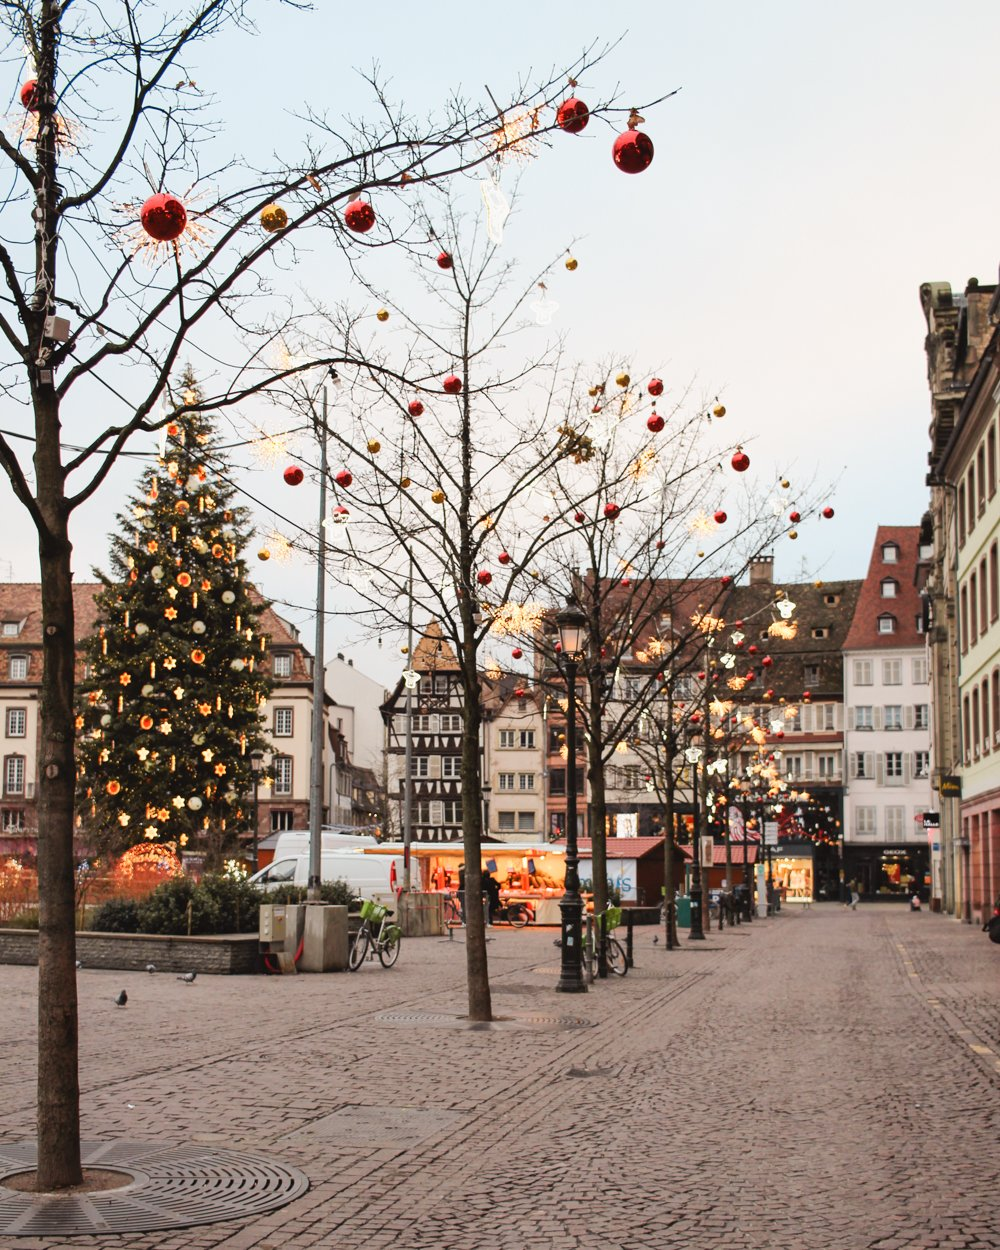 Christmas Market in Strasbourg, France | Capital of Christmas